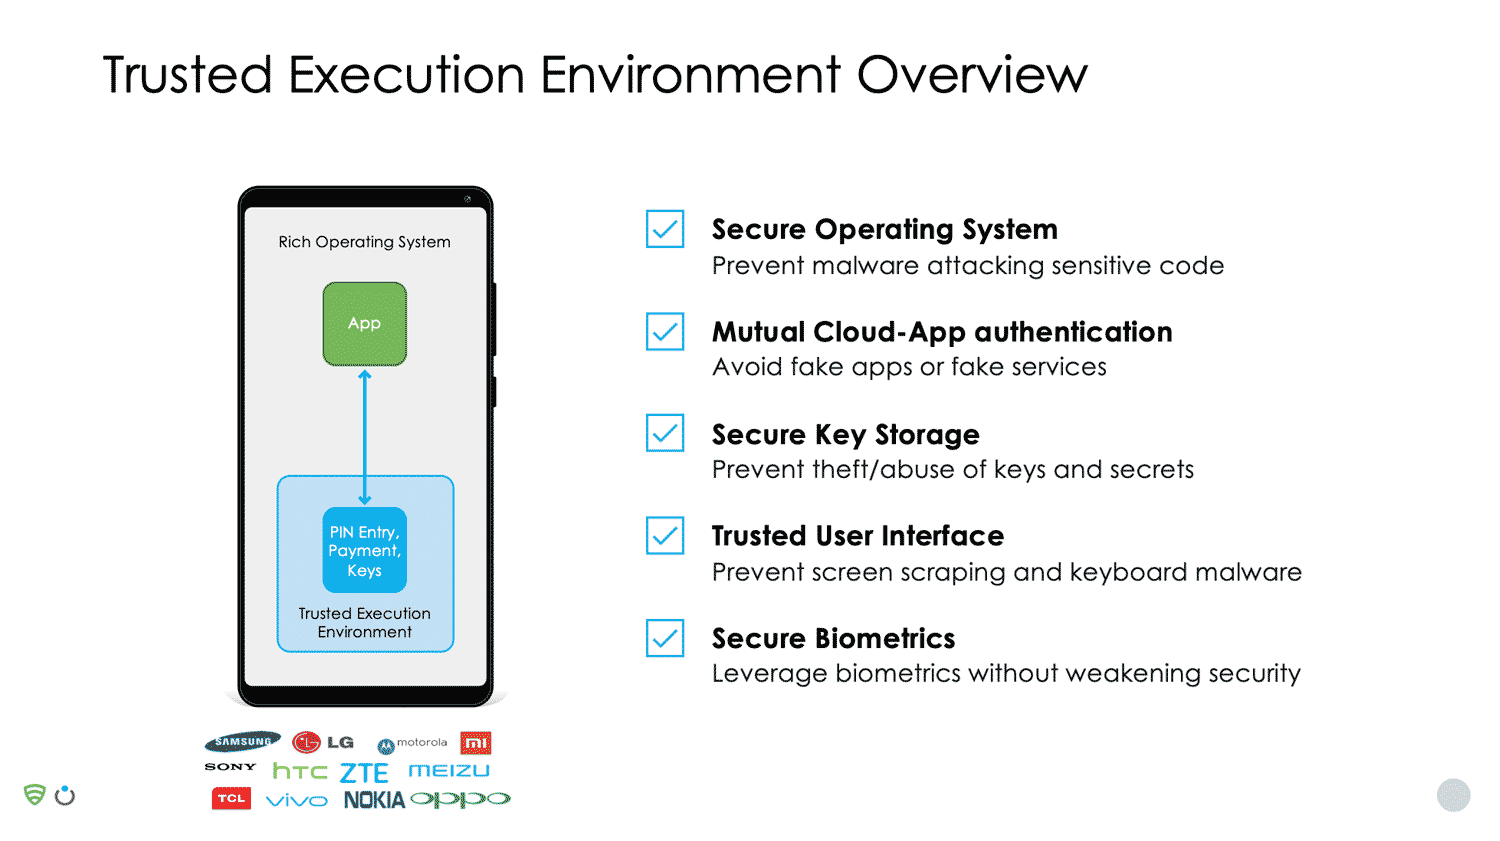 Trusted Execution Environment Overview